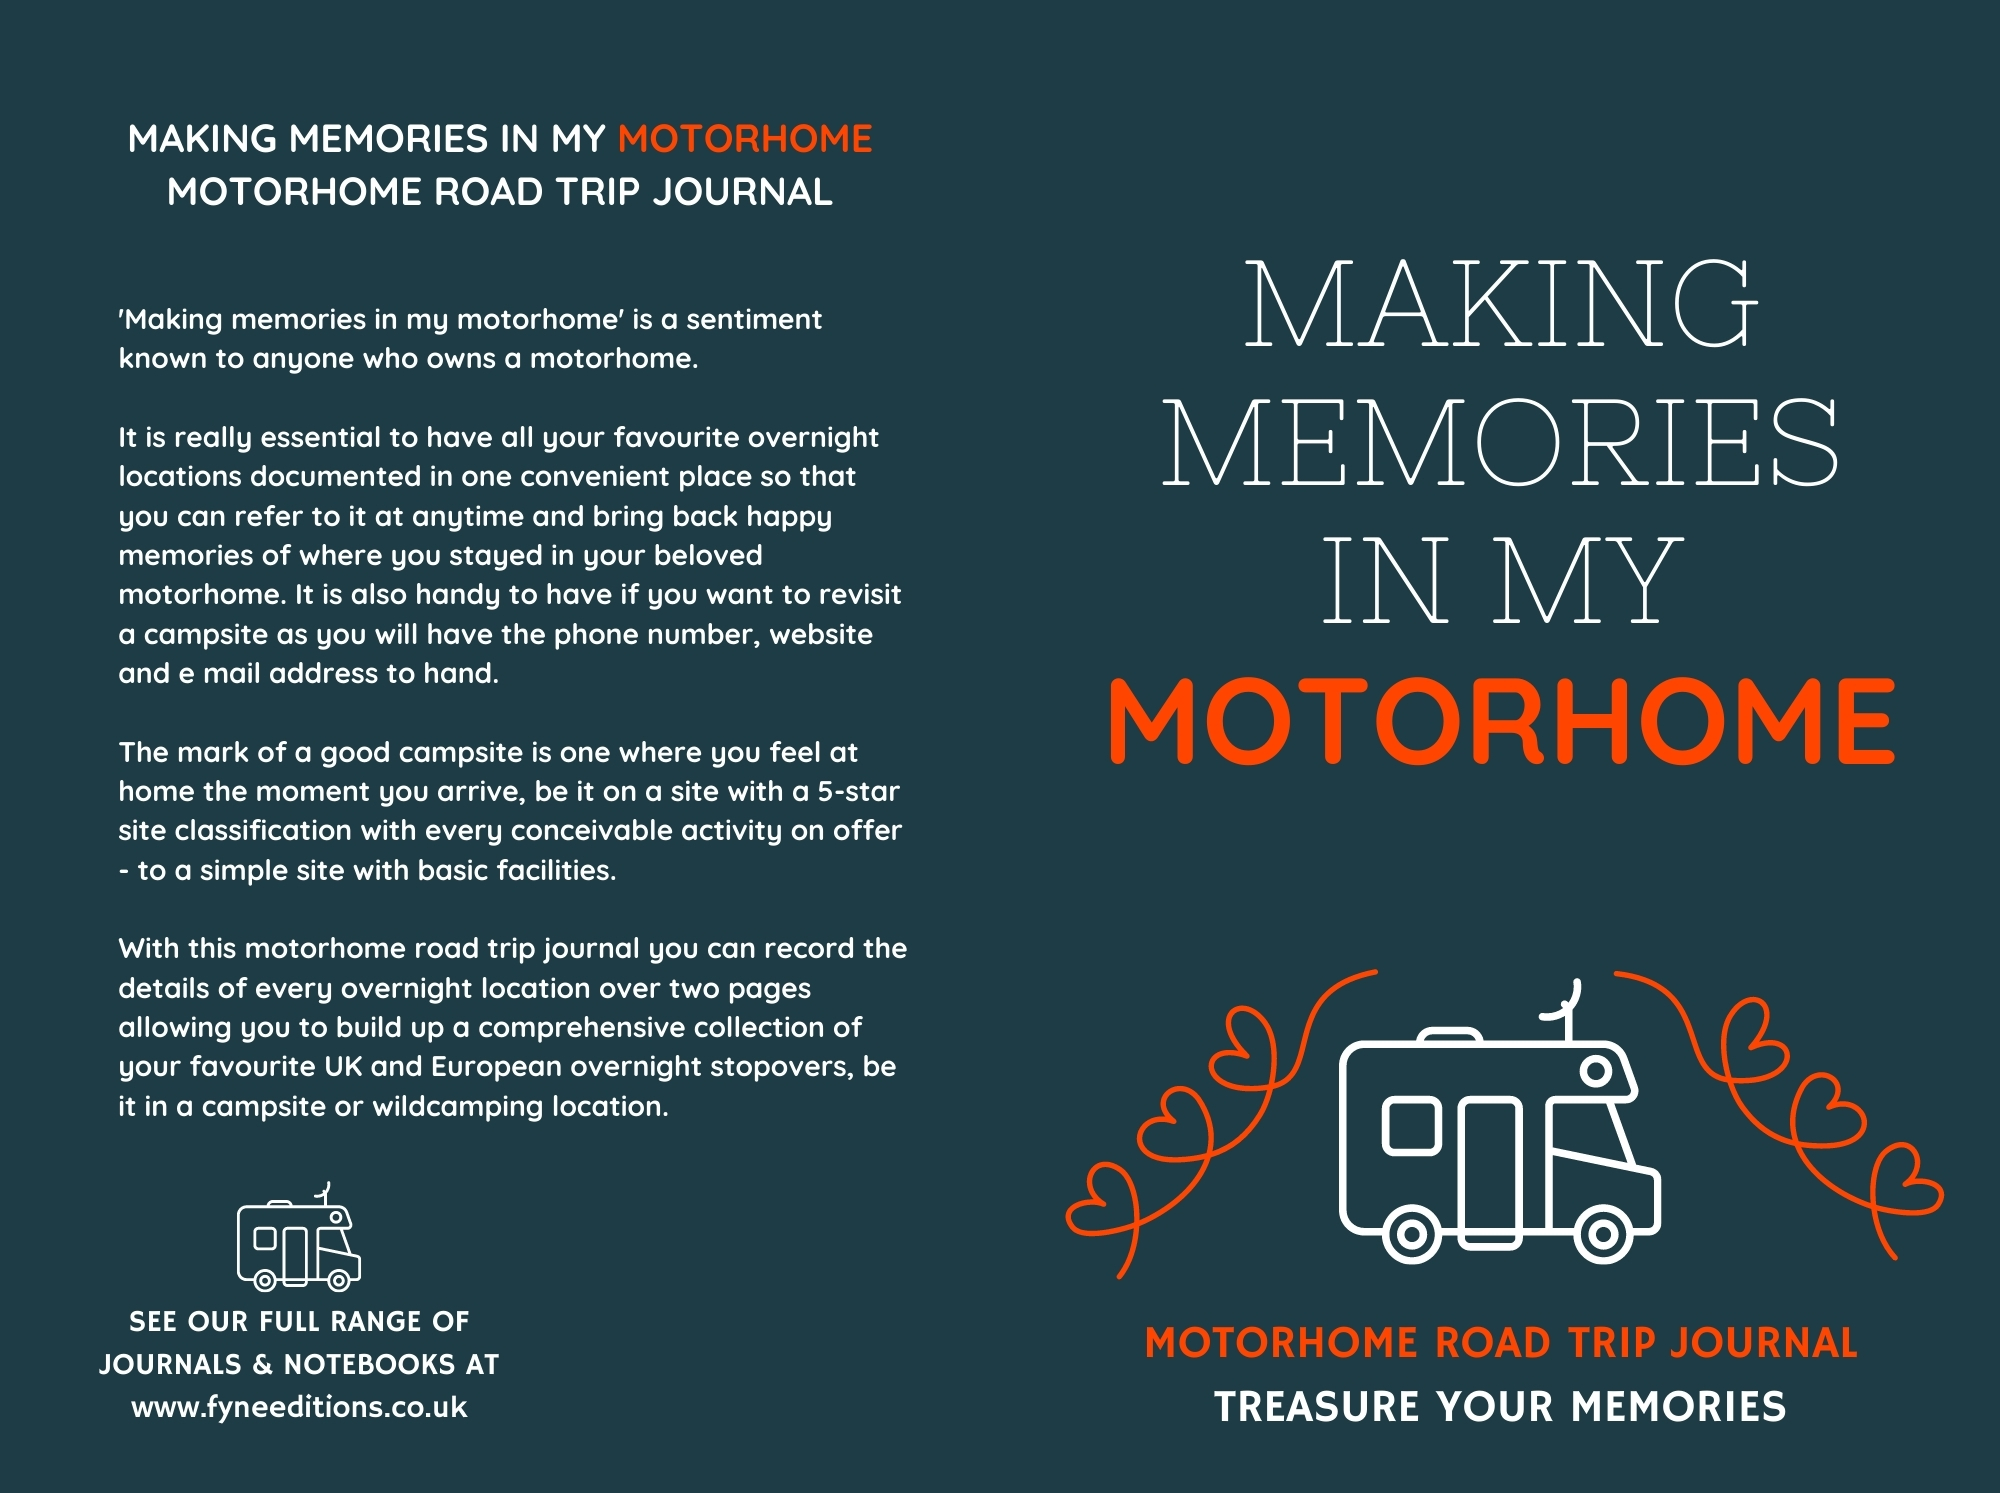 Making Memories In My Motorhome - Journal Cover